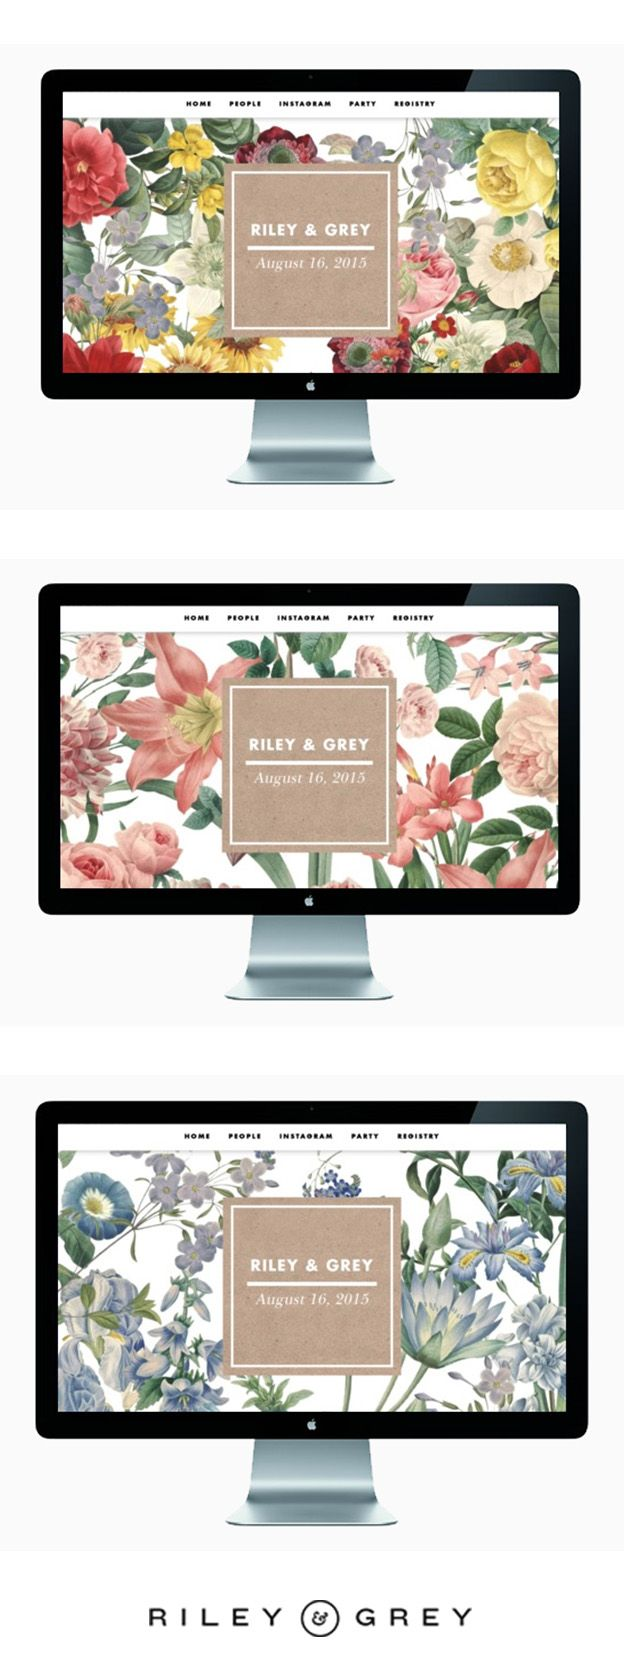 """BLOOM"" floral wedding website template designed by Riley & Grey. See more designs here: https://www.rileygrey.com/designs#/"